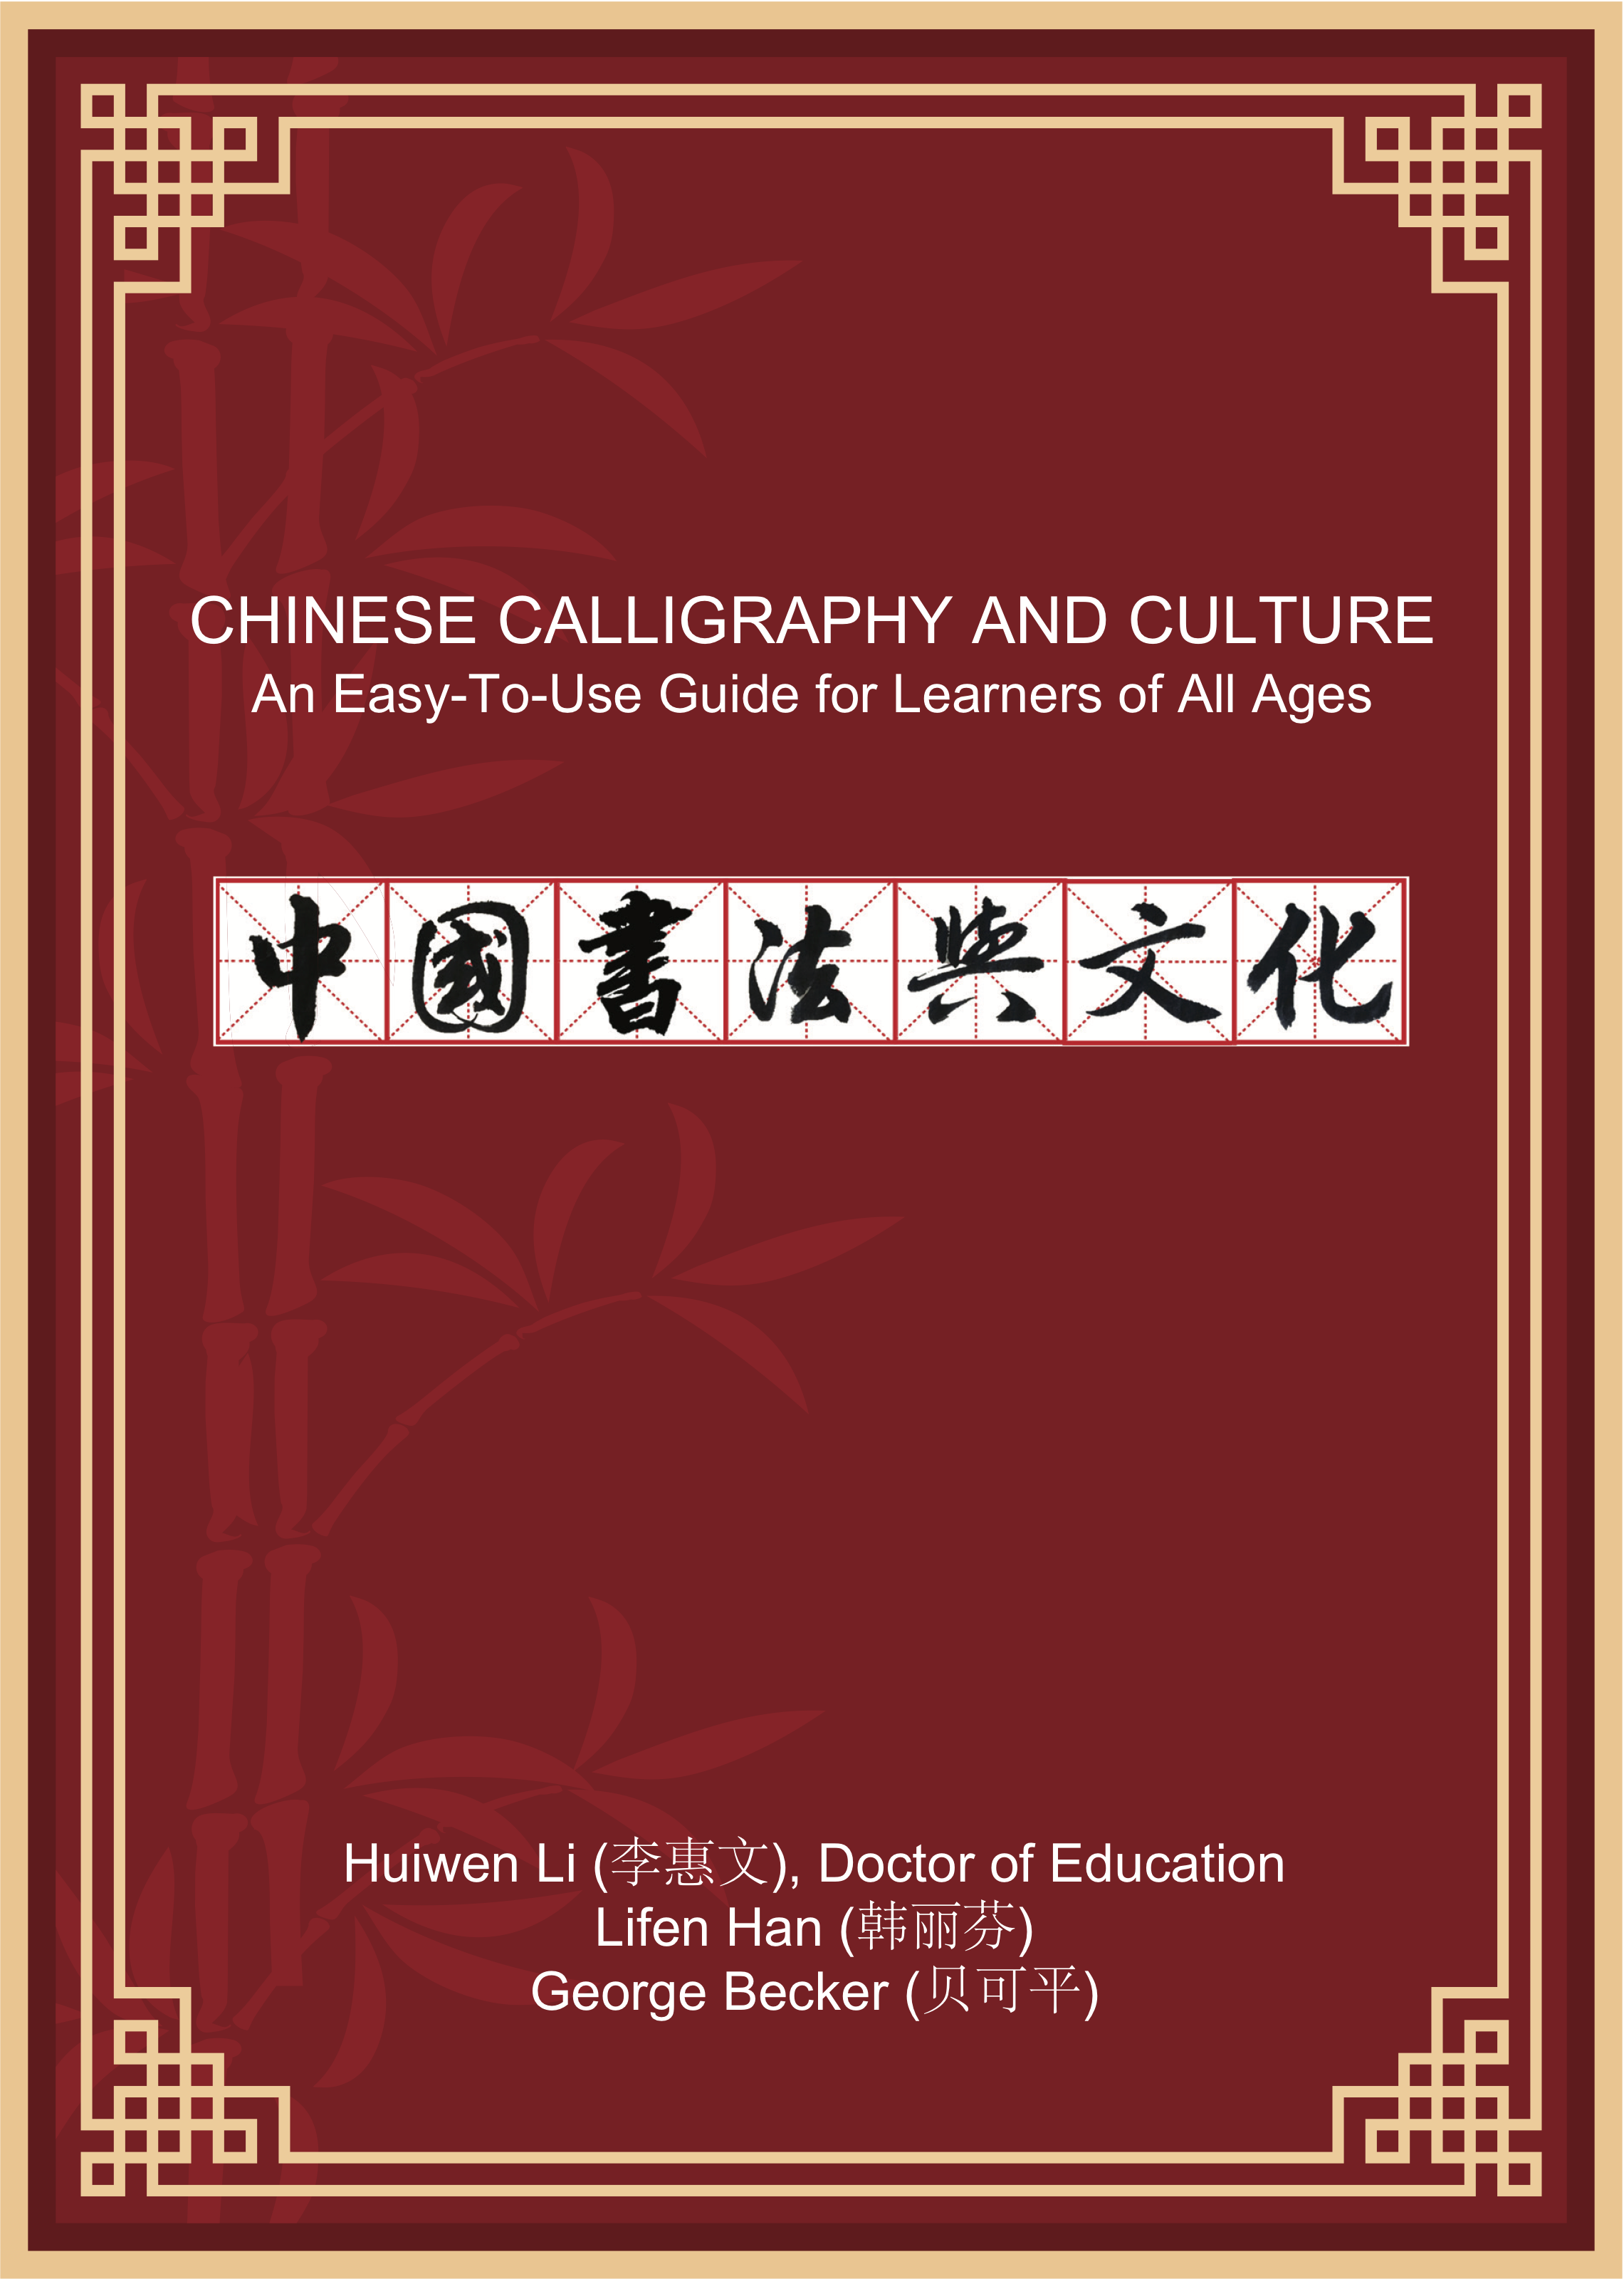 Cover image for Chinese Calligraphy and Culture 中國書法與文化